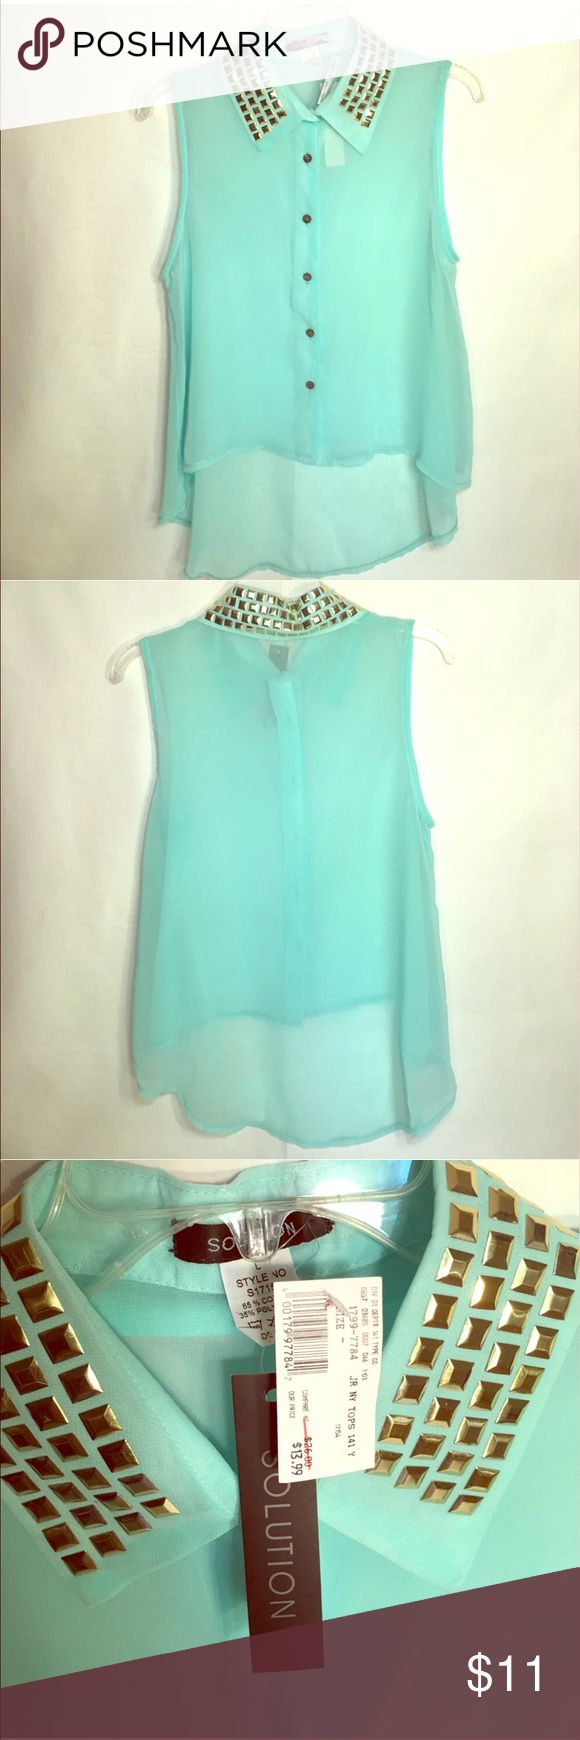 Teal gold studded collar button down high low top Beautiful Teal & gold studded collar button down high low sleeveless sheer top Solution Tops Button Down Shirts